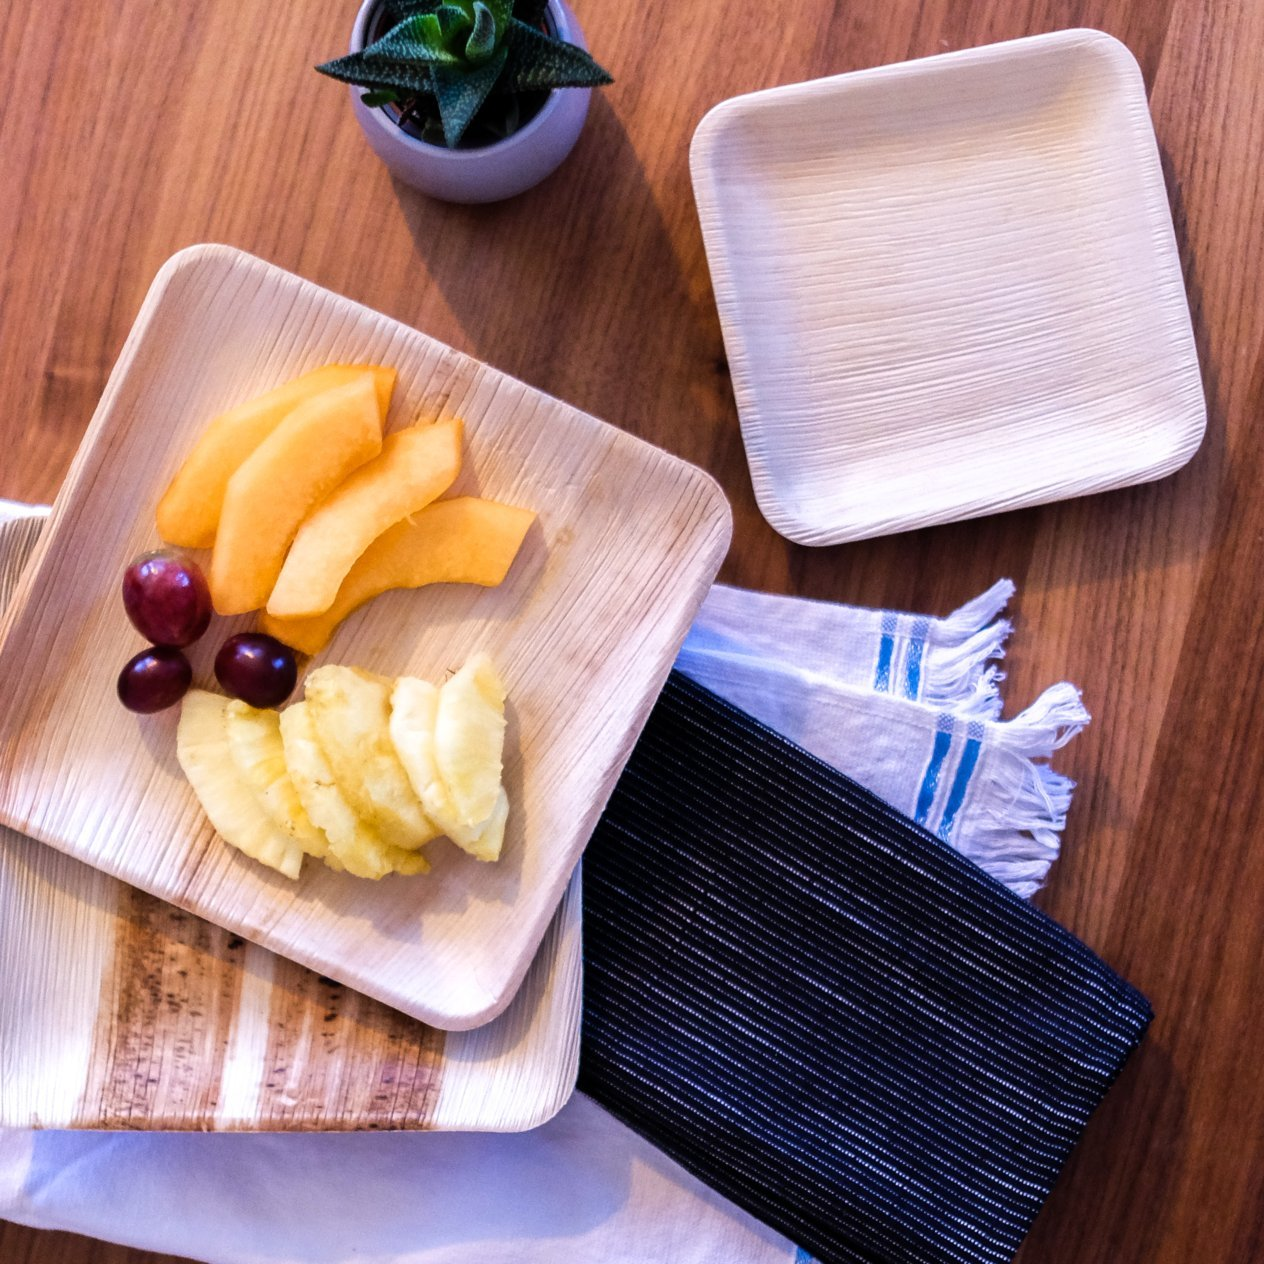 6'' Square Disposable Palm Leaf Paper Plates: Compostable, Biodegradable Heavy Duty Dinner Party Plate - Comparable to Bamboo Wood - Elegant Plant Based Dishware: (25 Pack) by Naturally Chic Dinnerware (Image #5)